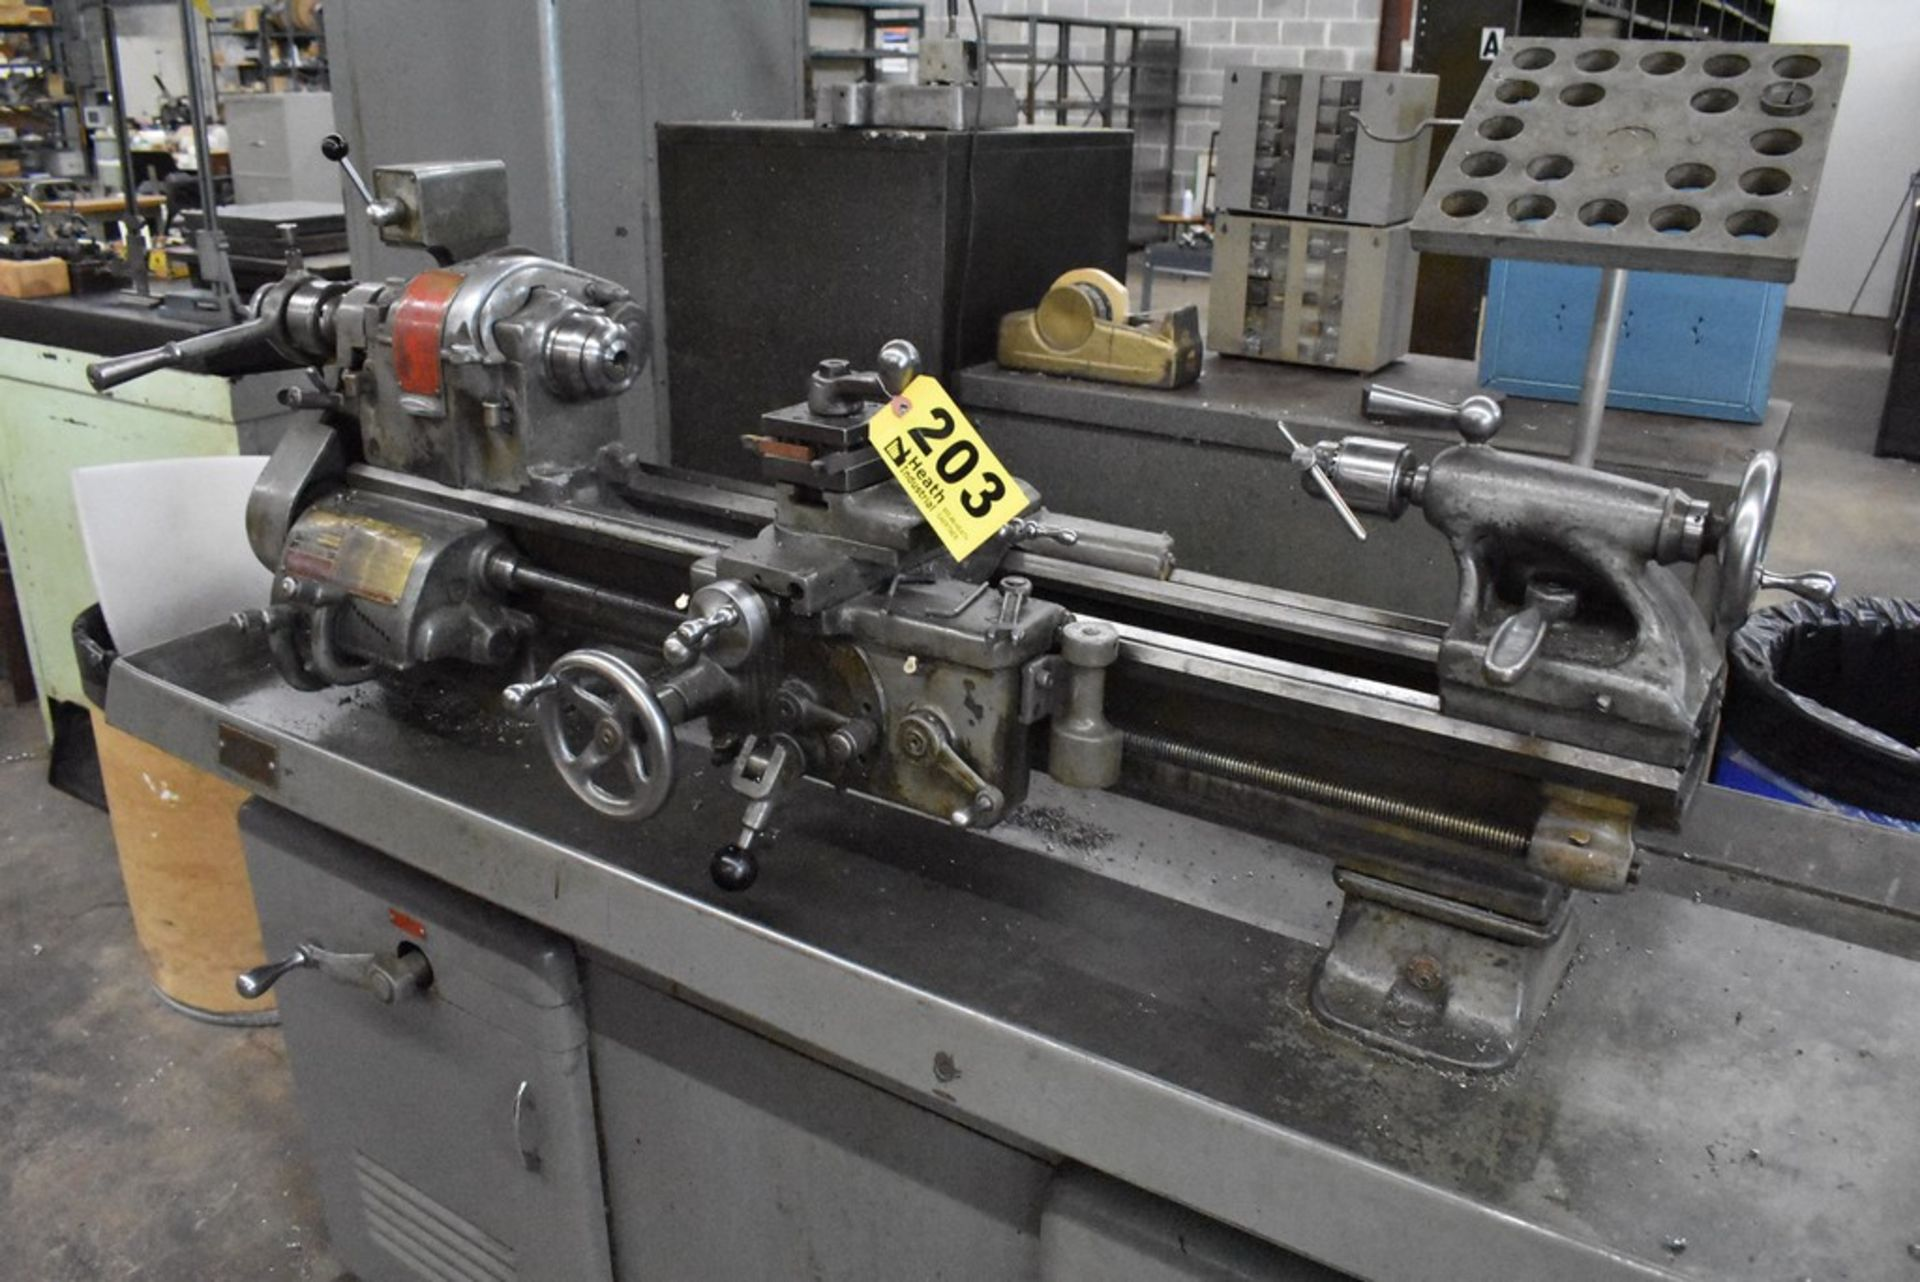 """SOUTH BEND 10""""X30"""" CABINET BASE TOOL ROOM LATHE, S/N 16711RKX12, WITH COLLET CLOSER, 4-WAY TOOL - Image 4 of 13"""